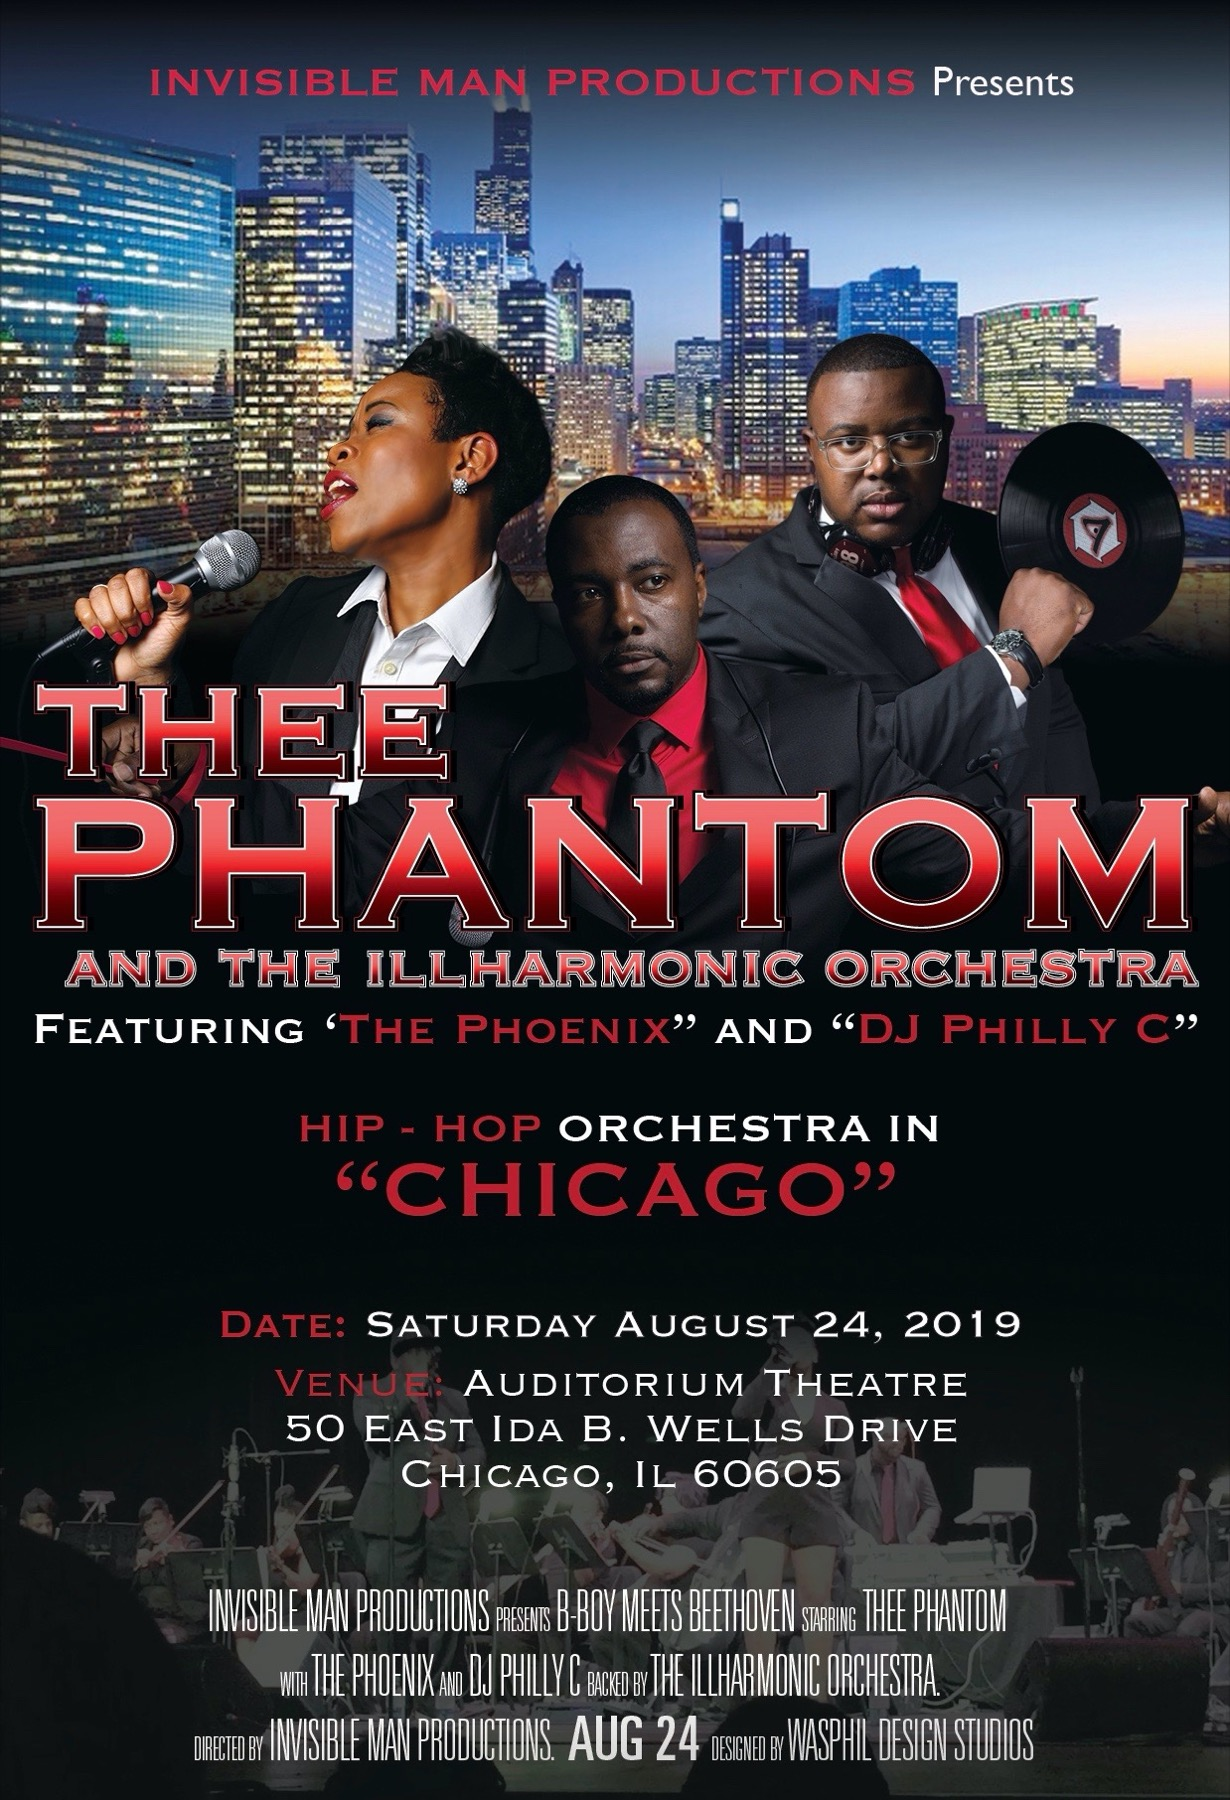 Hip-Hop Orchestra in Chicago